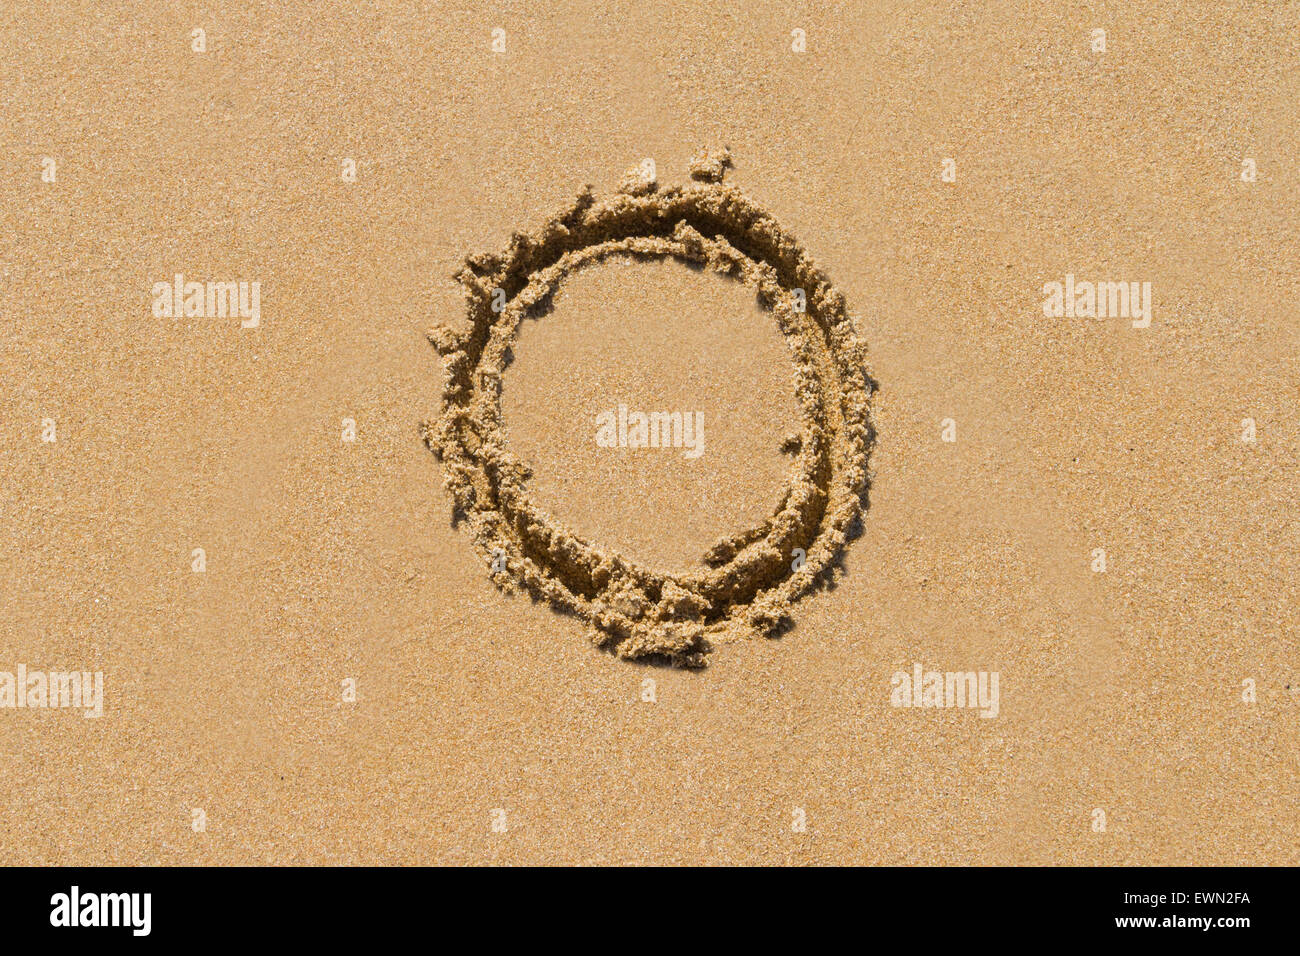 Letter O of the alphabet written on sand with upper case. - Stock Image